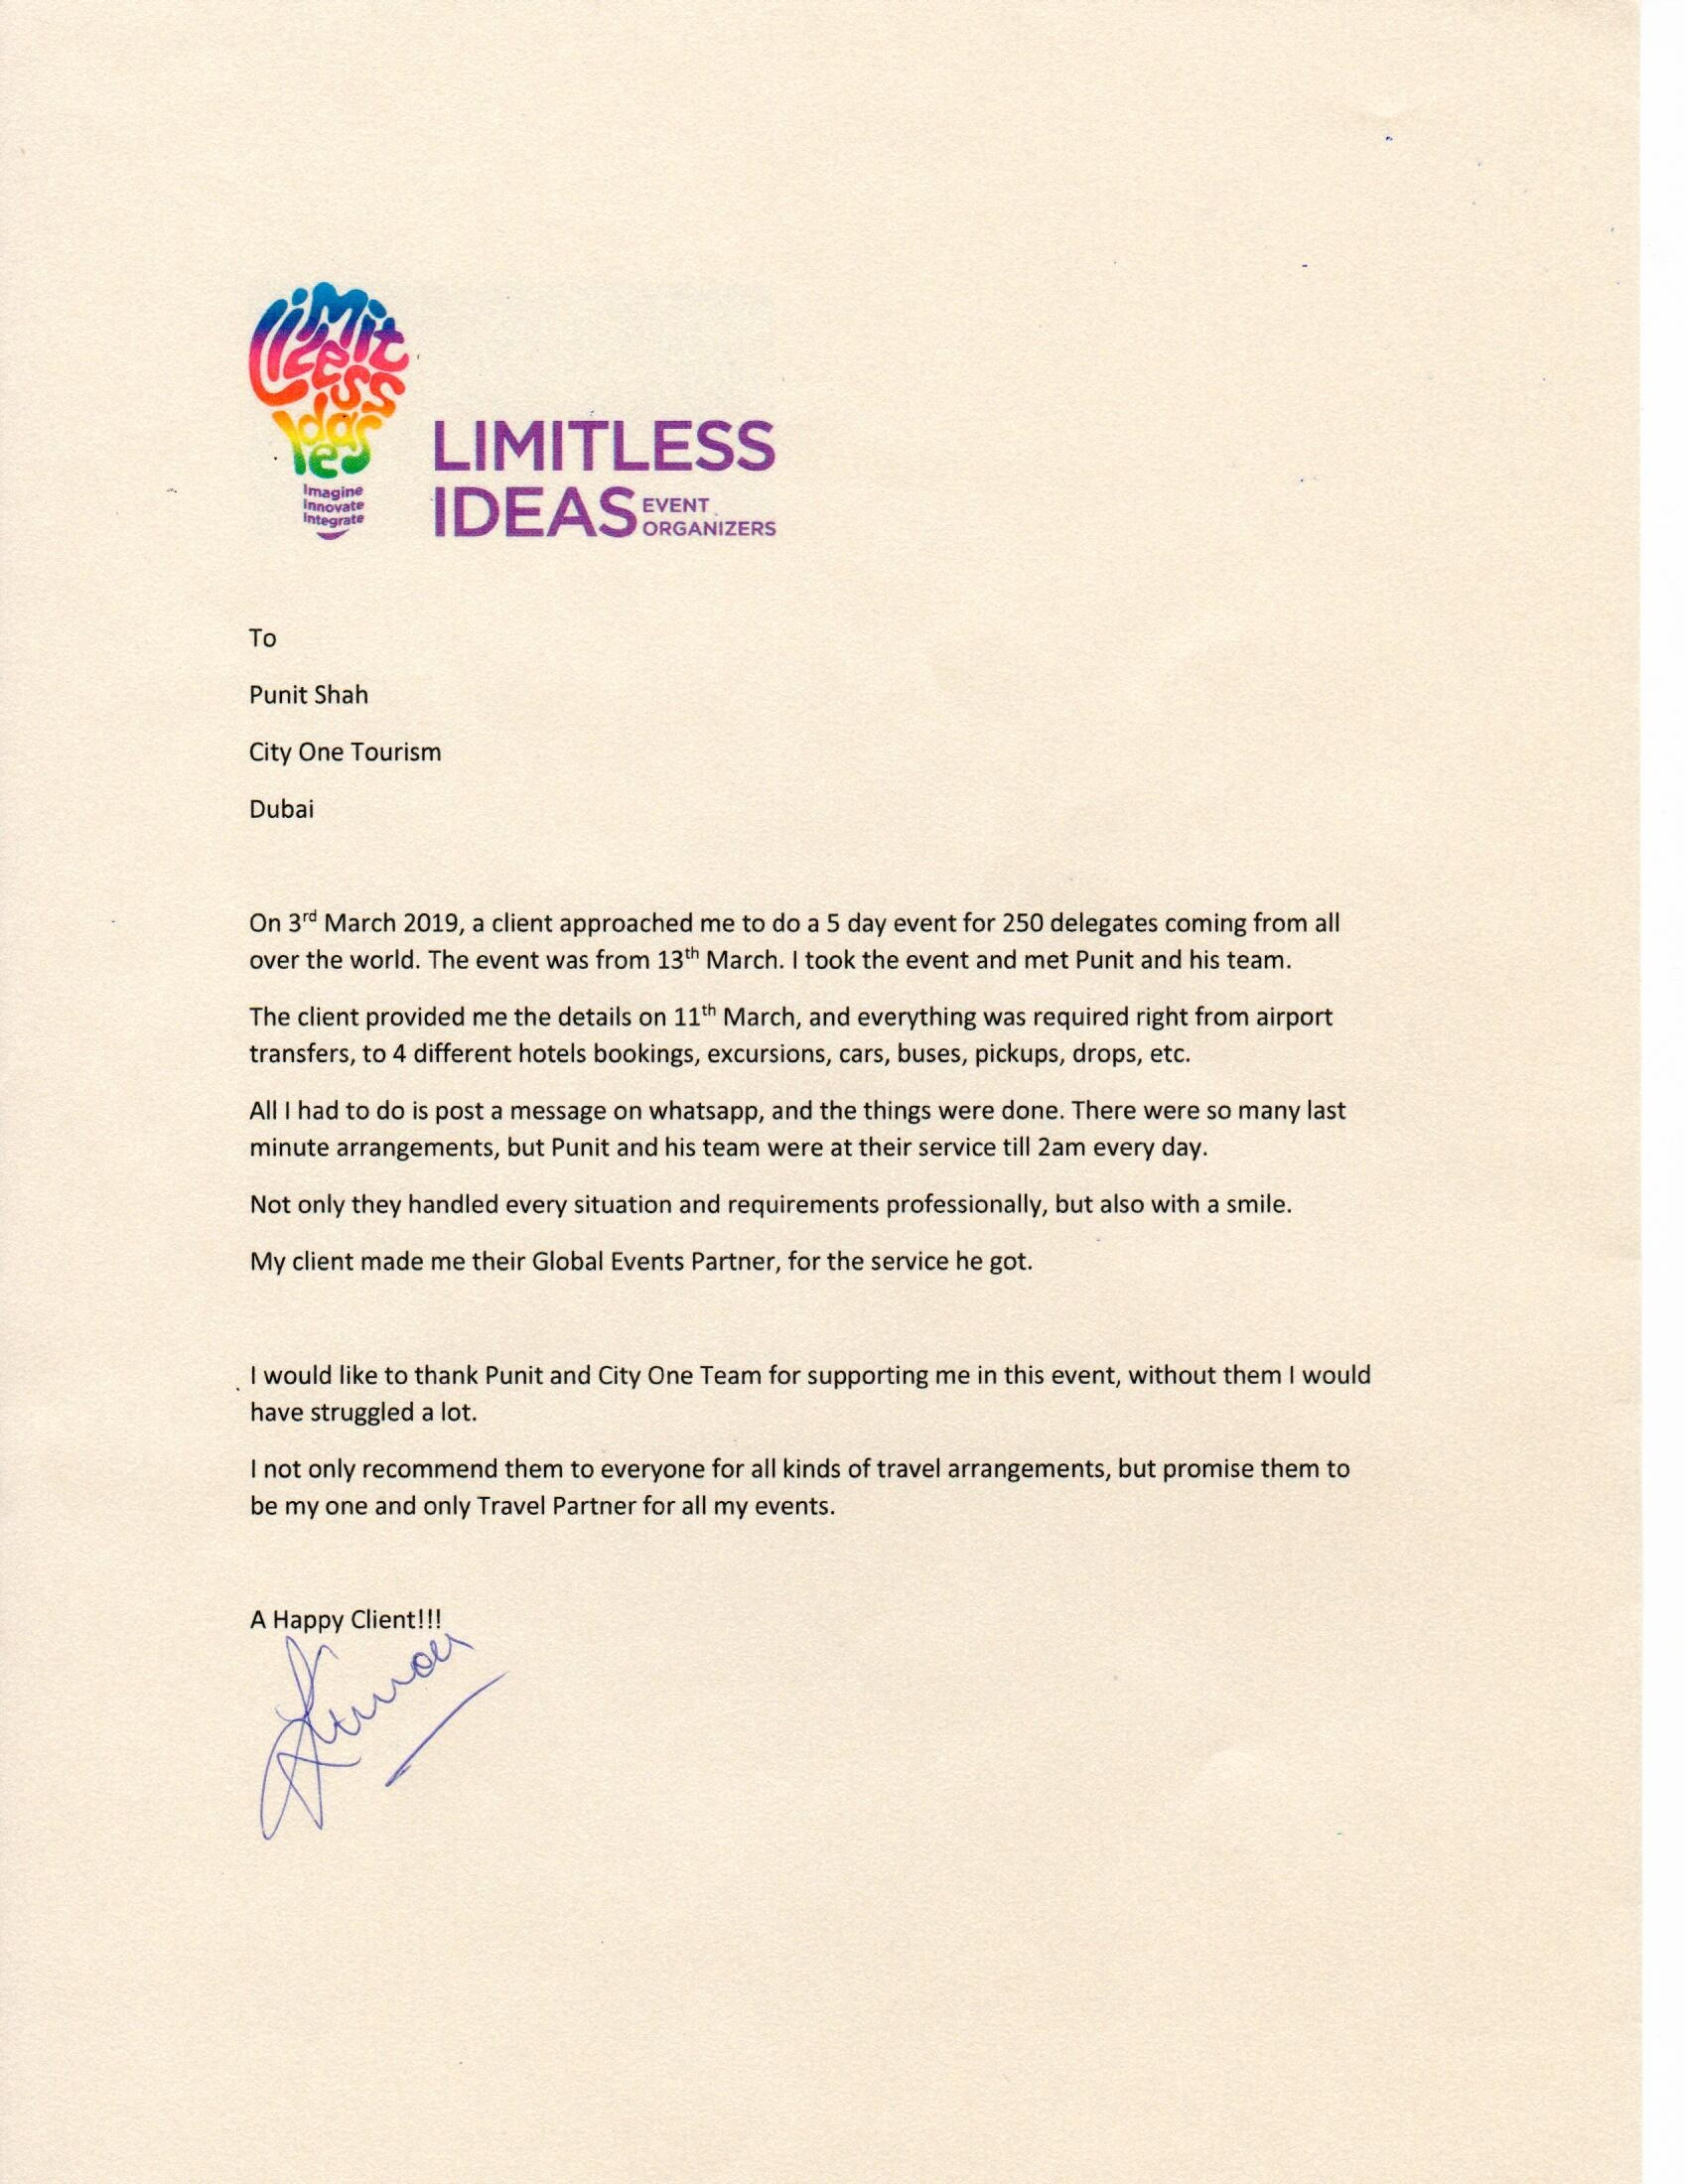 Limitless Ideas Event Organizers